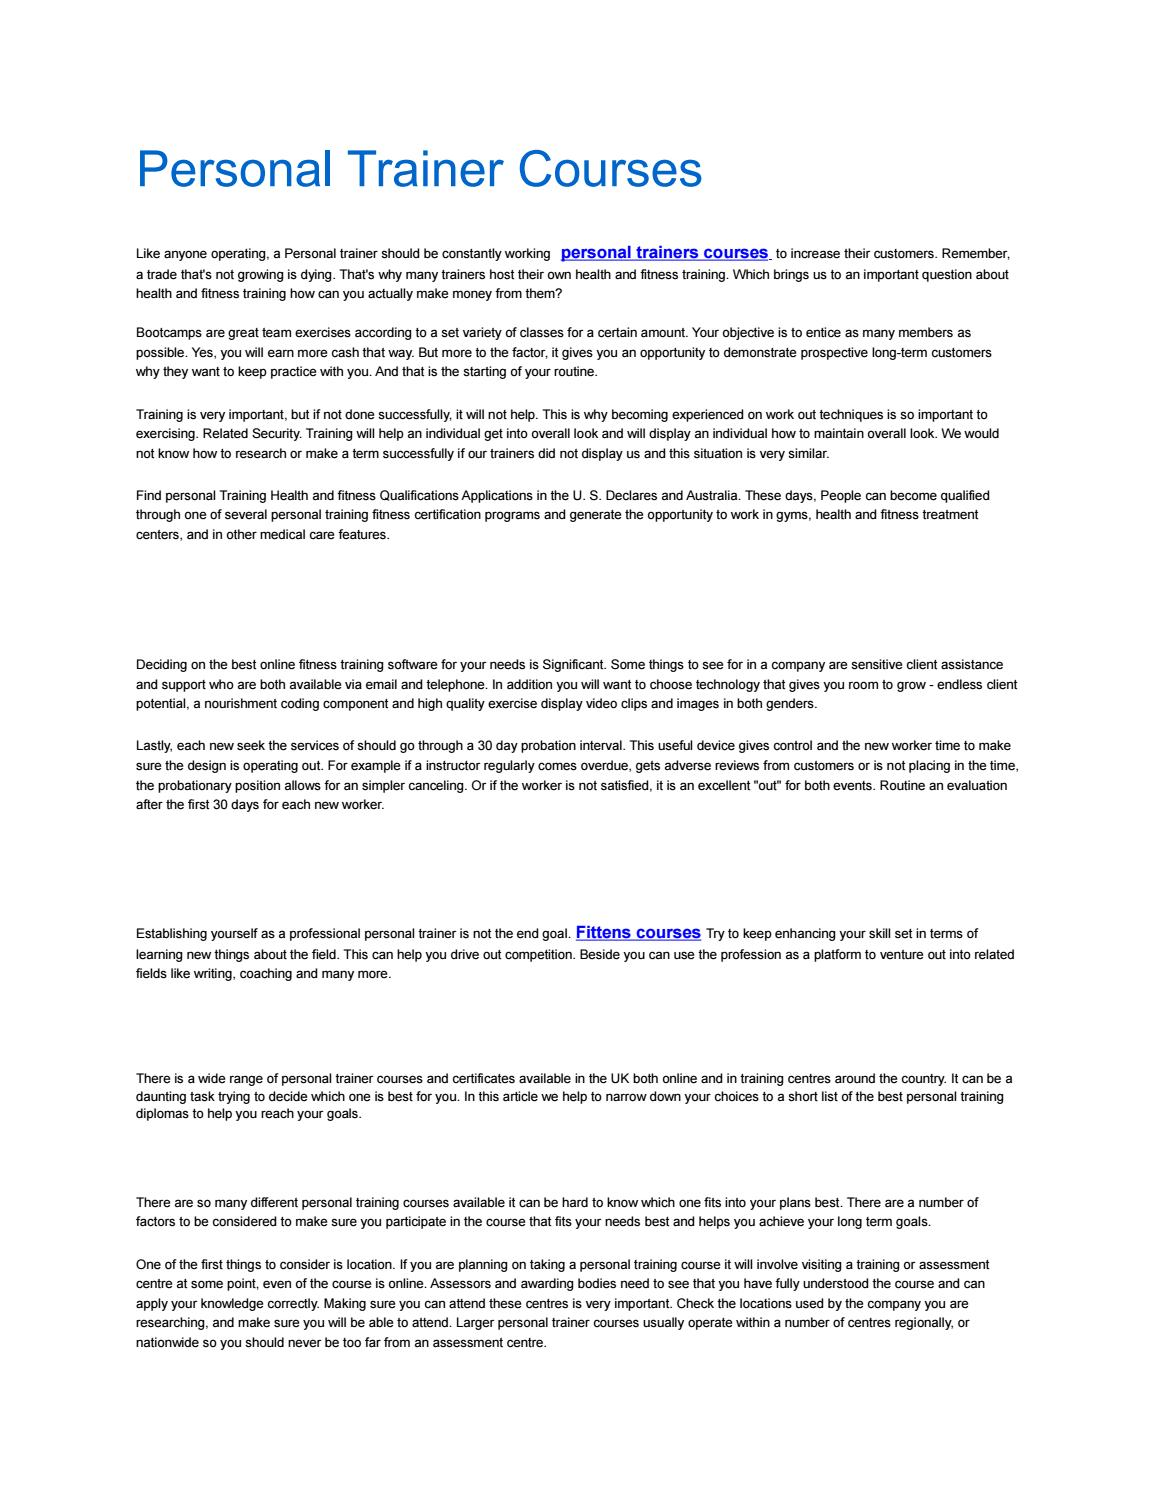 Personal Trainer Courses By Buy Instgaram Followers Uk Issuu